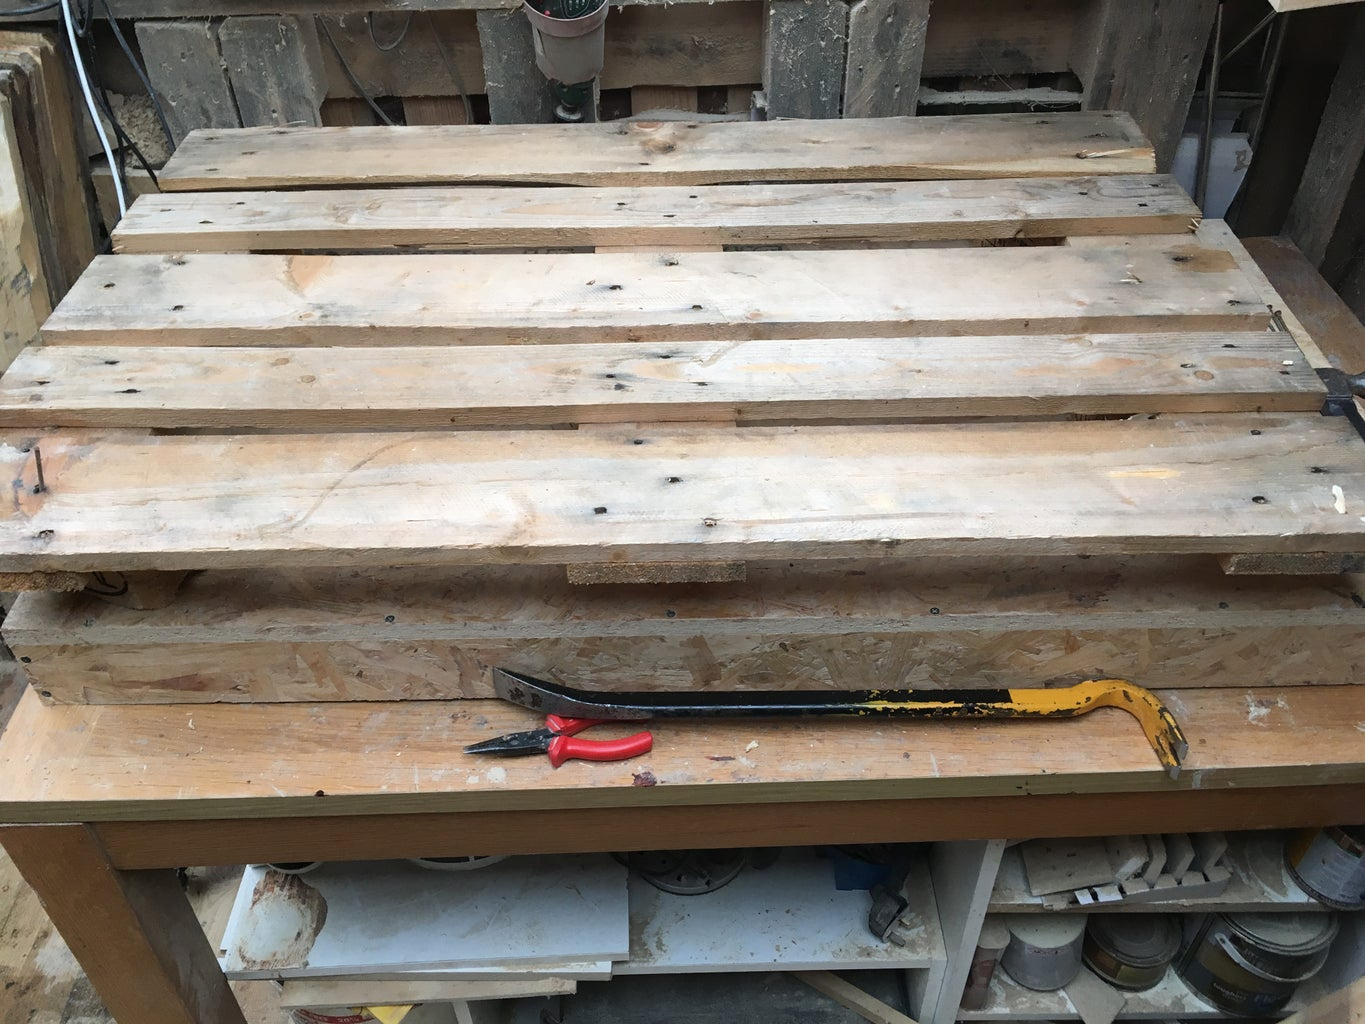 HOW TO DISASSEMBLE a PALLET - STEP 4